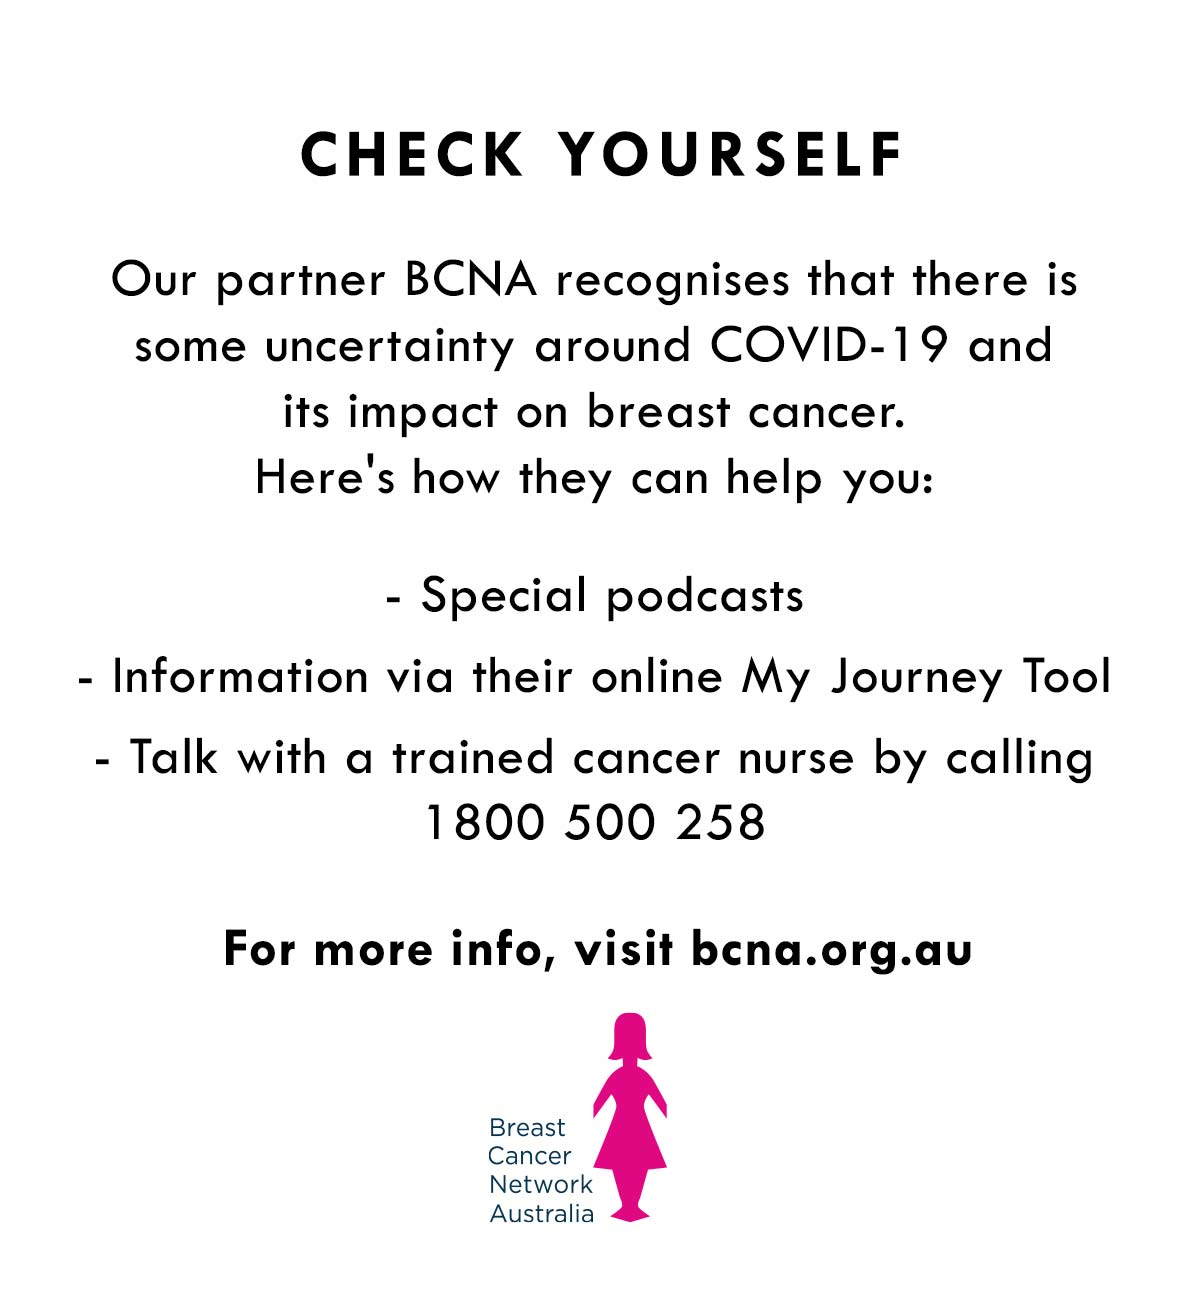 Check yourself - Our partner BCNA recognises that there is some uncertainty around COVID-19 and it''s impact on breast cancer. Find out more